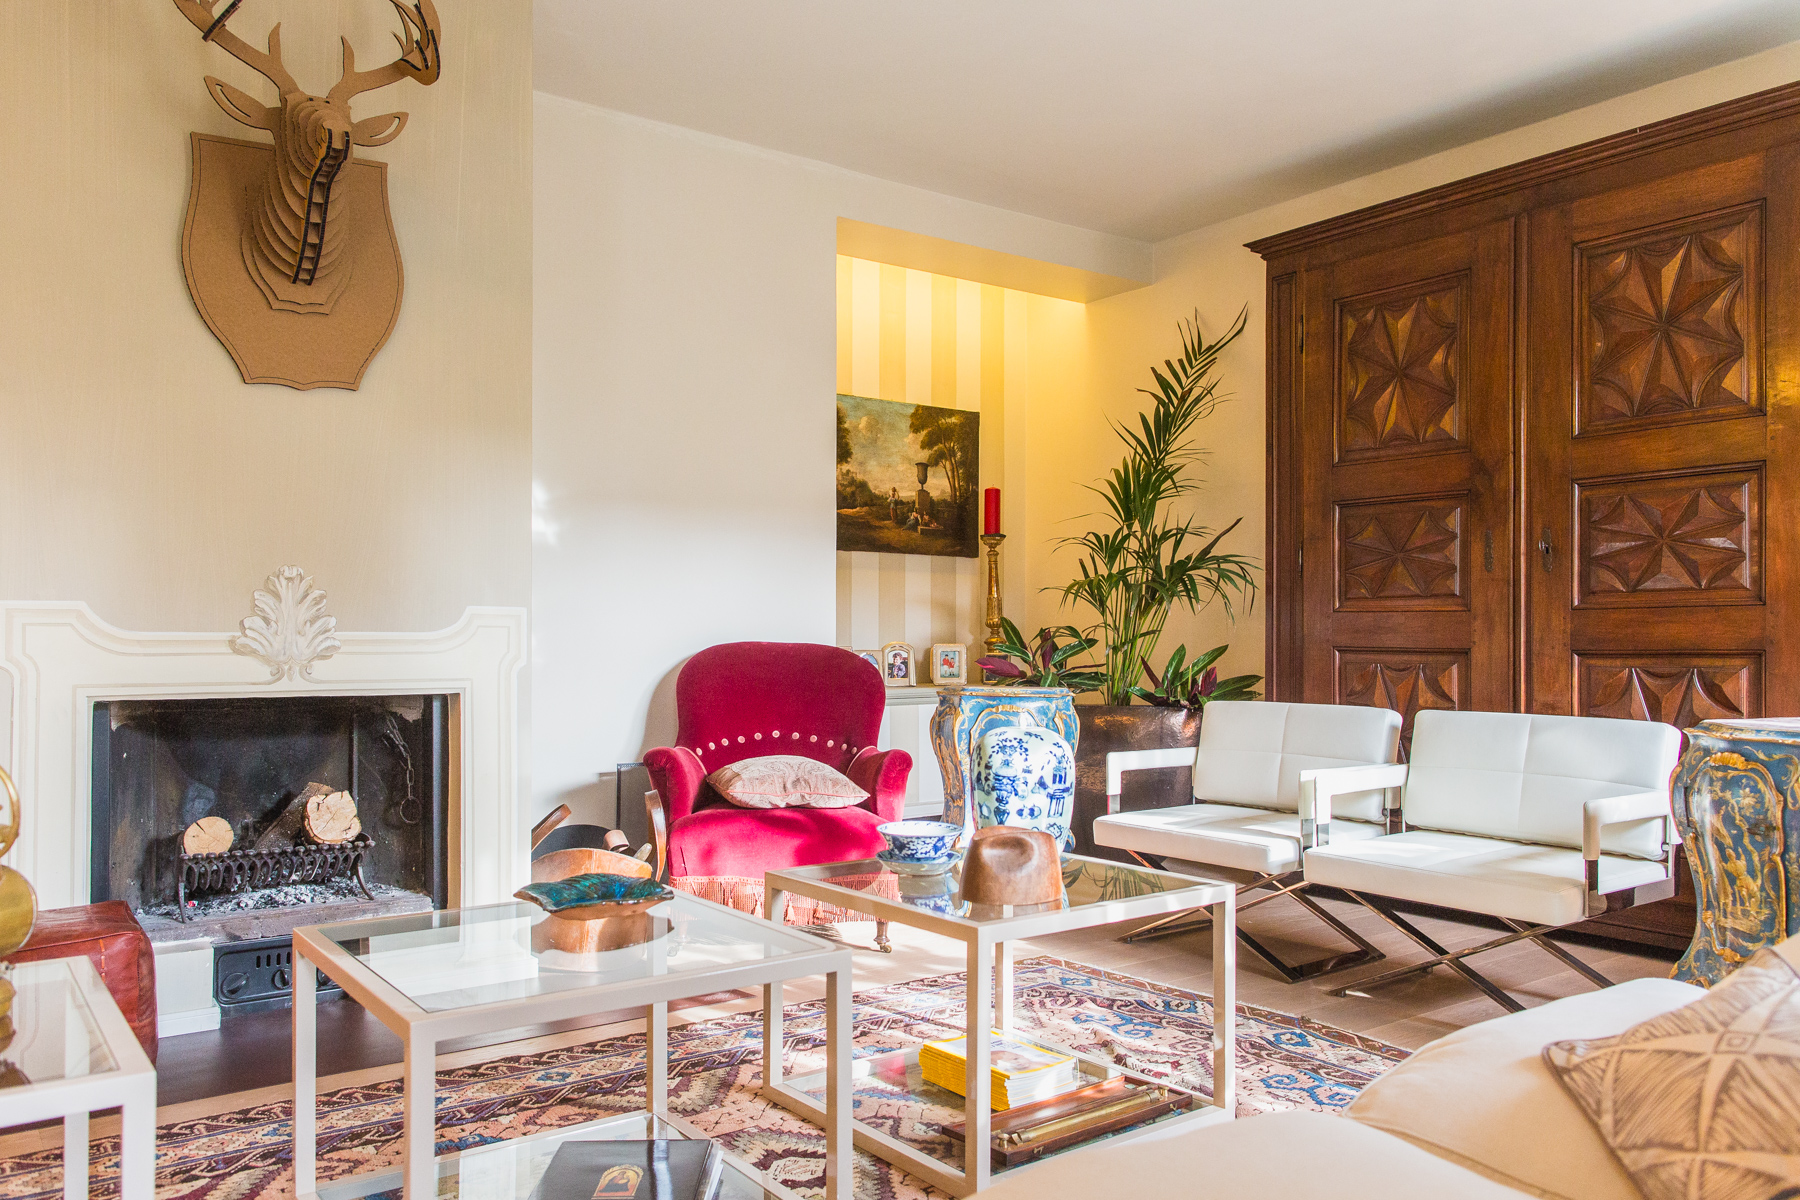 Additional photo for property listing at Refined apartment in the pre-hill of Turin Via Luisa del Carretto Torino, Turin 10131 Italy